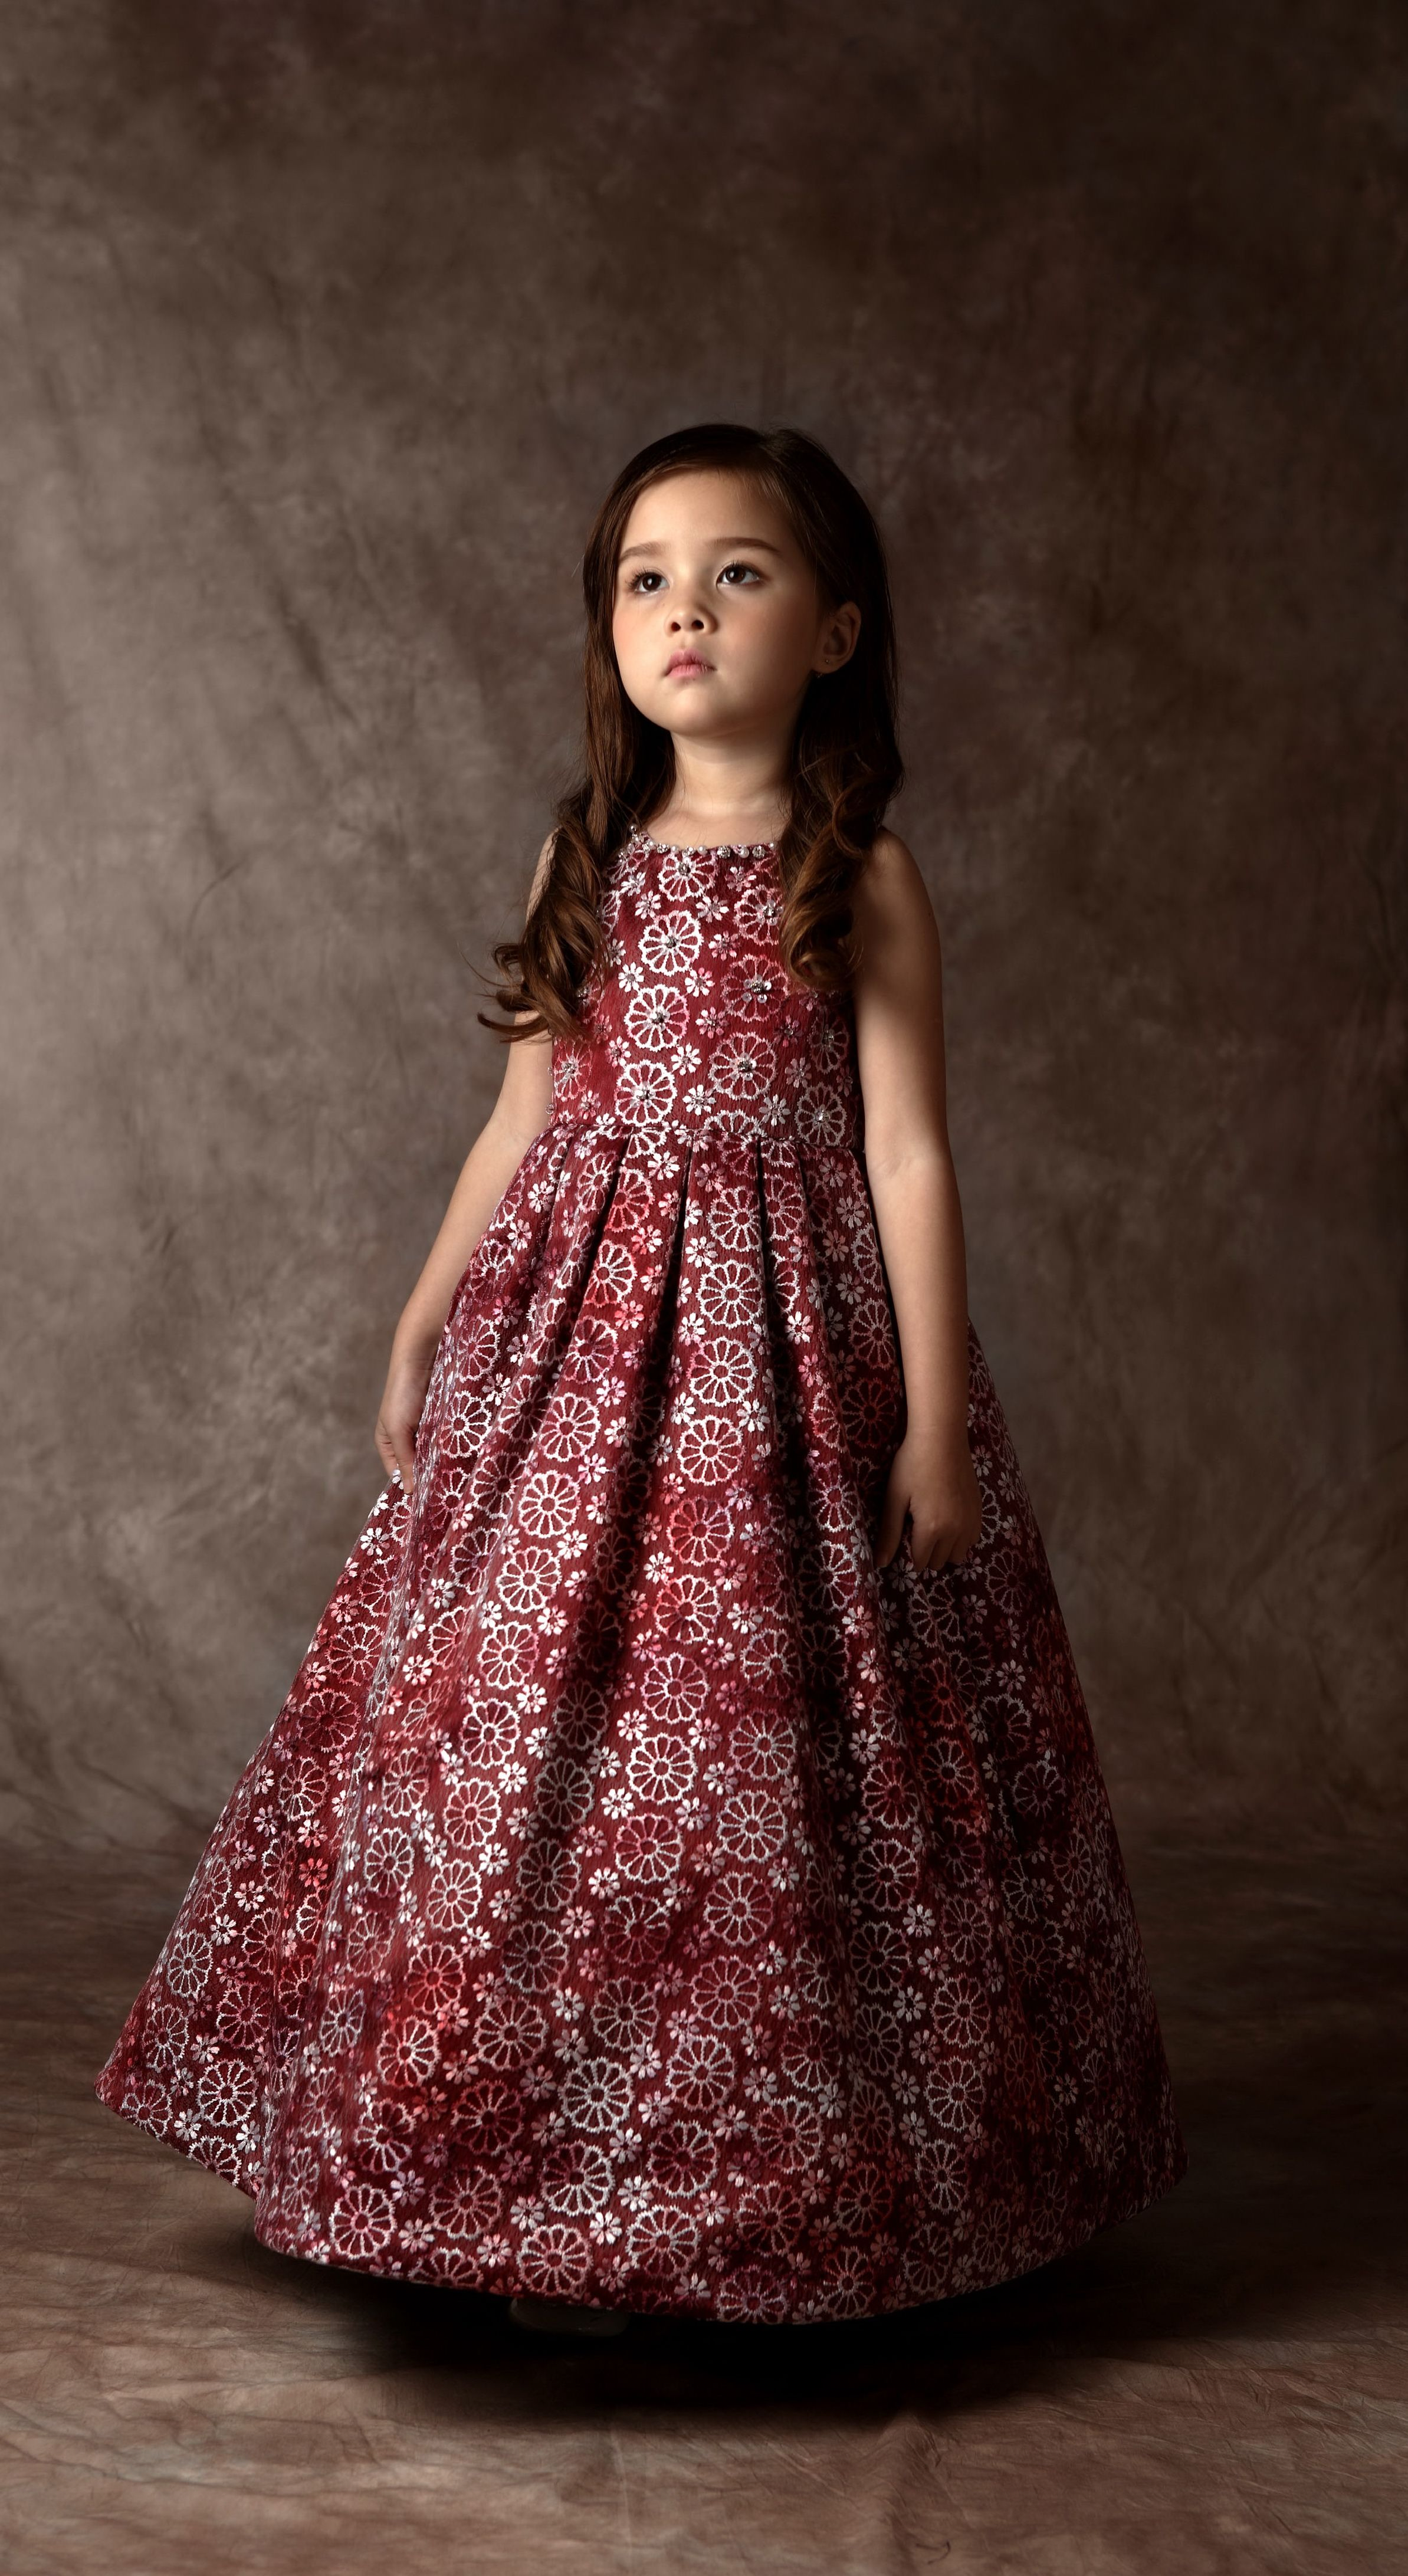 c545aa7d2 DORIAN BABY DOLL FW 2016/17   kids styles   Baby girl party dresses ...